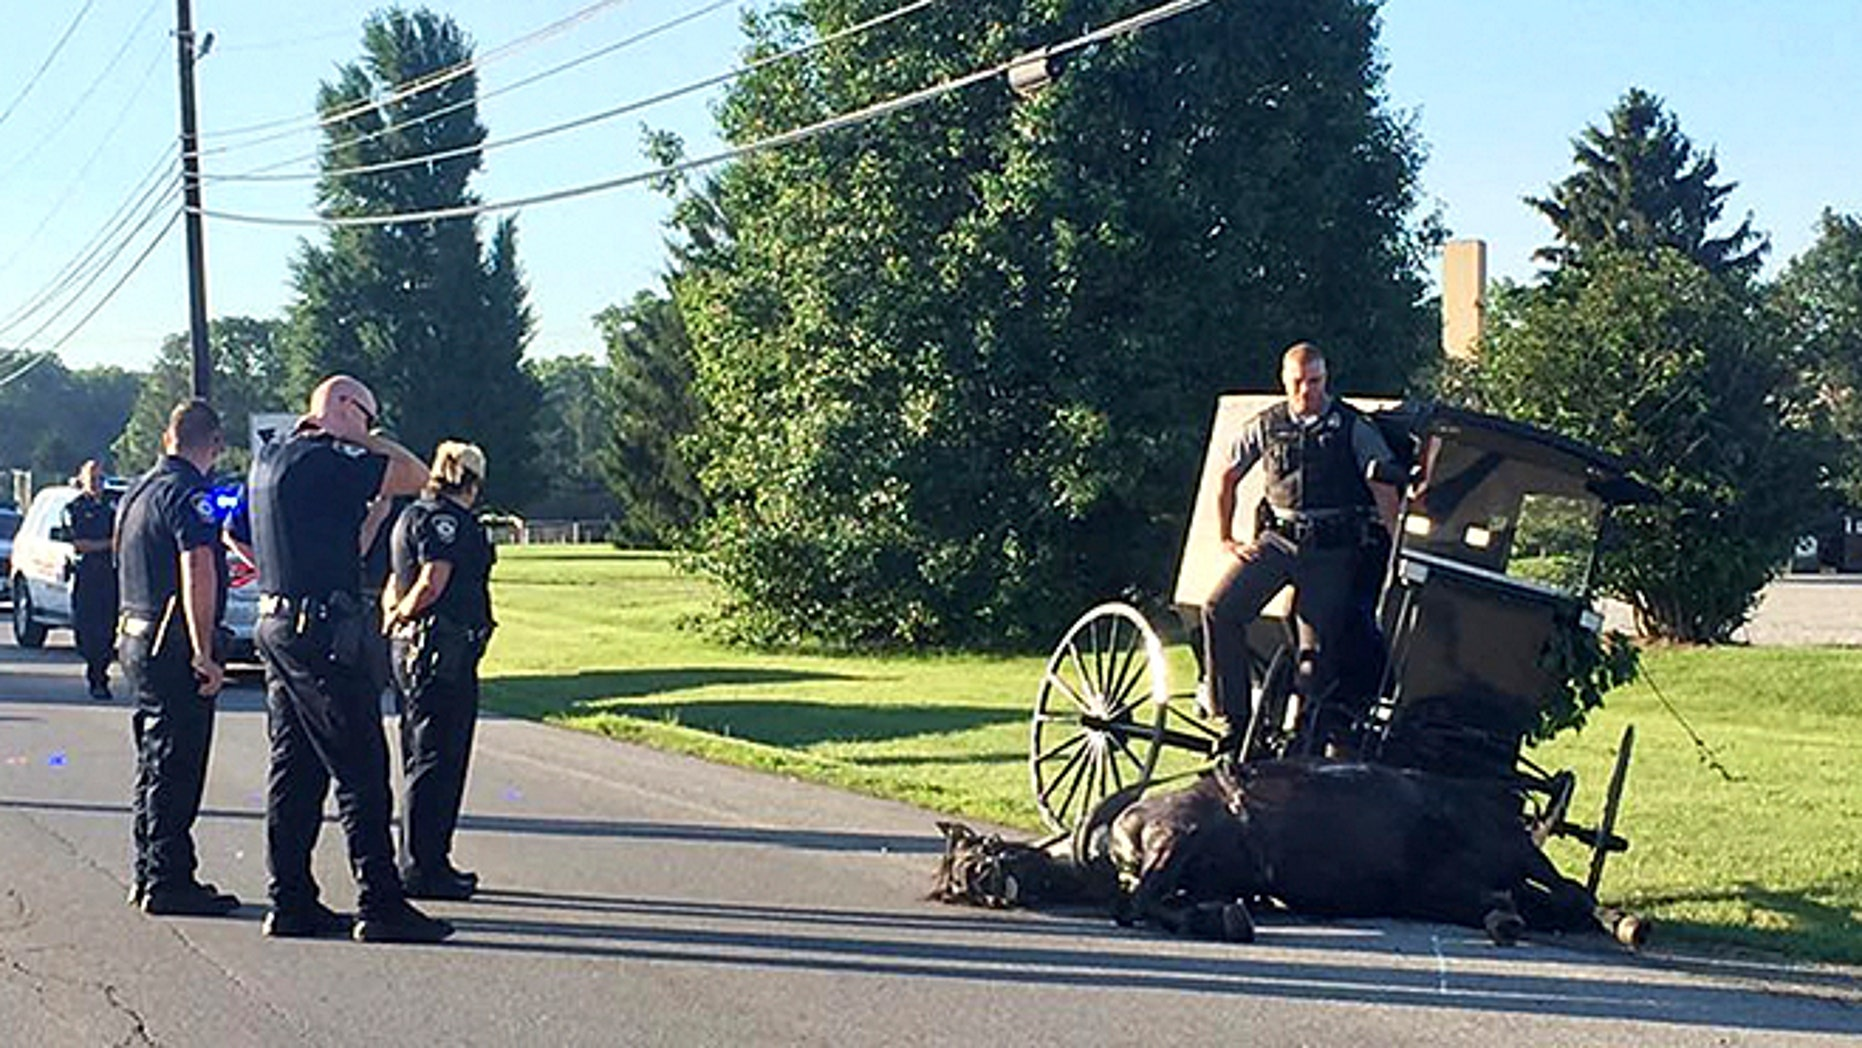 Ohio trooper C.O. Smith jumped into a driver-less buggy to corral a runaway horse.